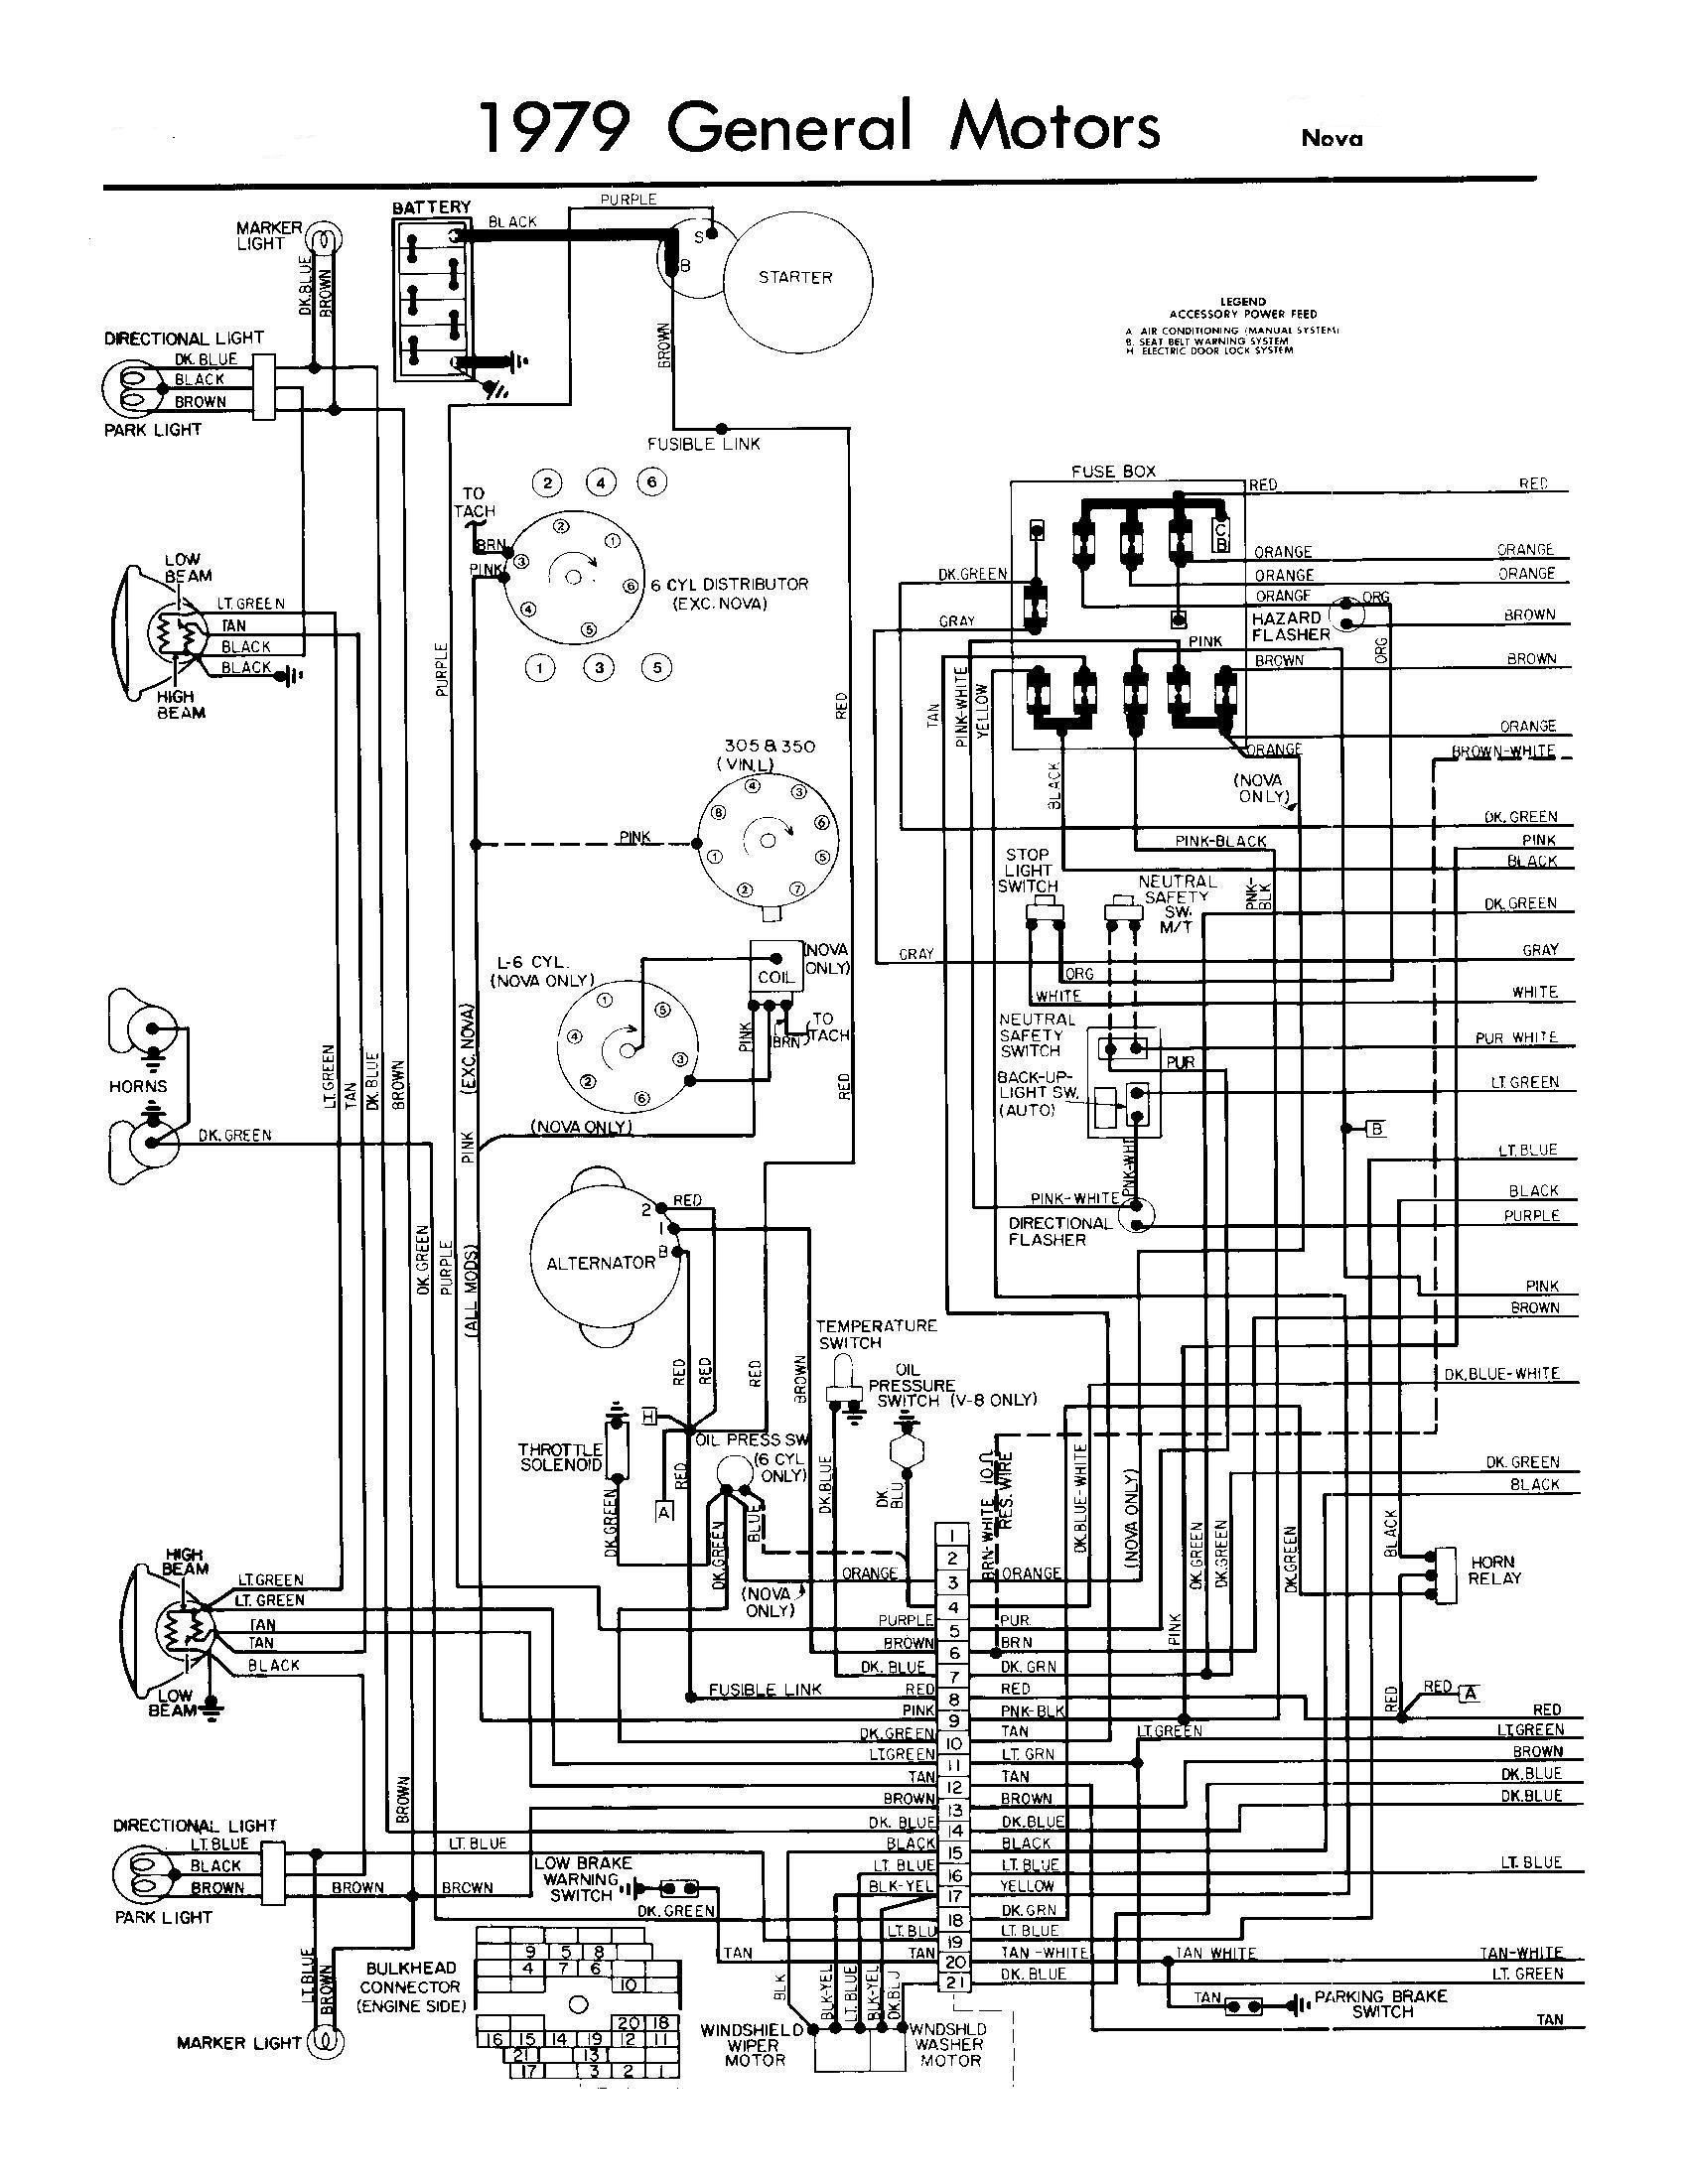 af30d80785d45bfeba8f1db47439920a 79 chevy truck wiring diagram 82 chevy truck wiring diagram 1973 chevy nova wiring harness at edmiracle.co